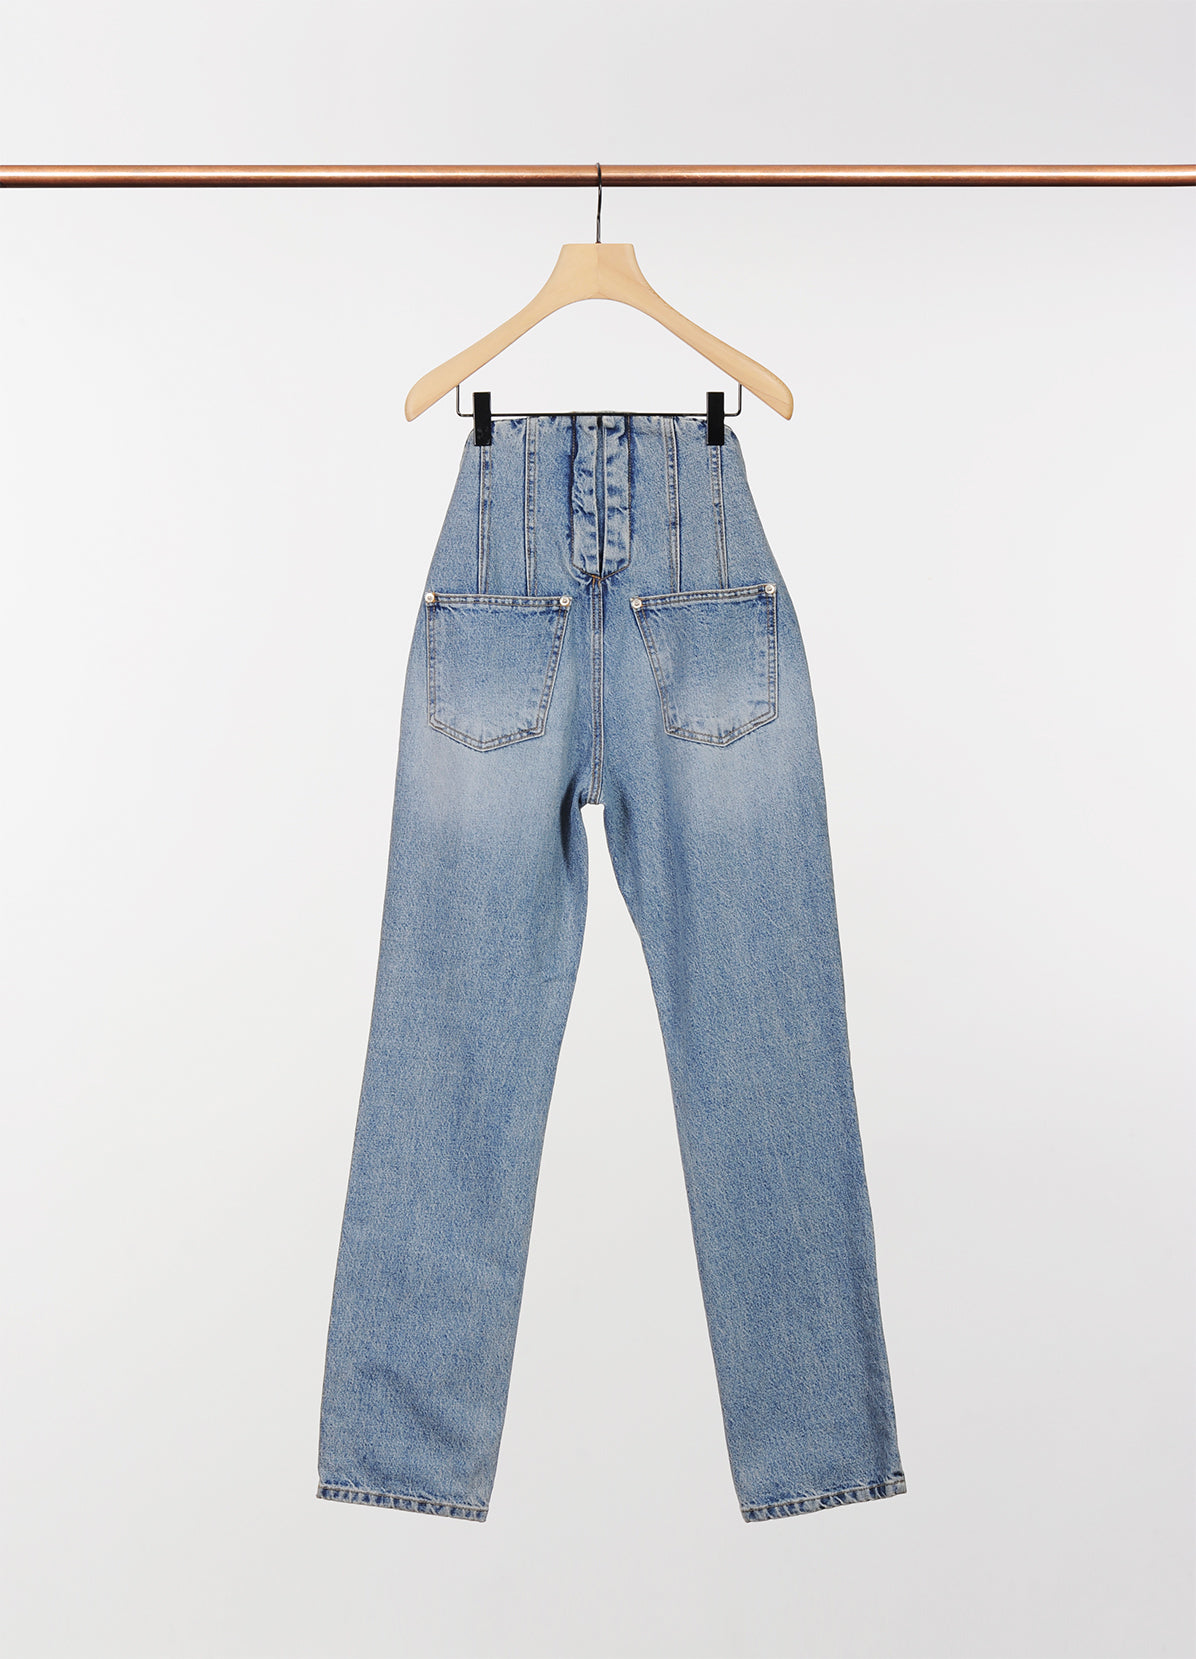 BACK-UP STRAIGHT JEANS